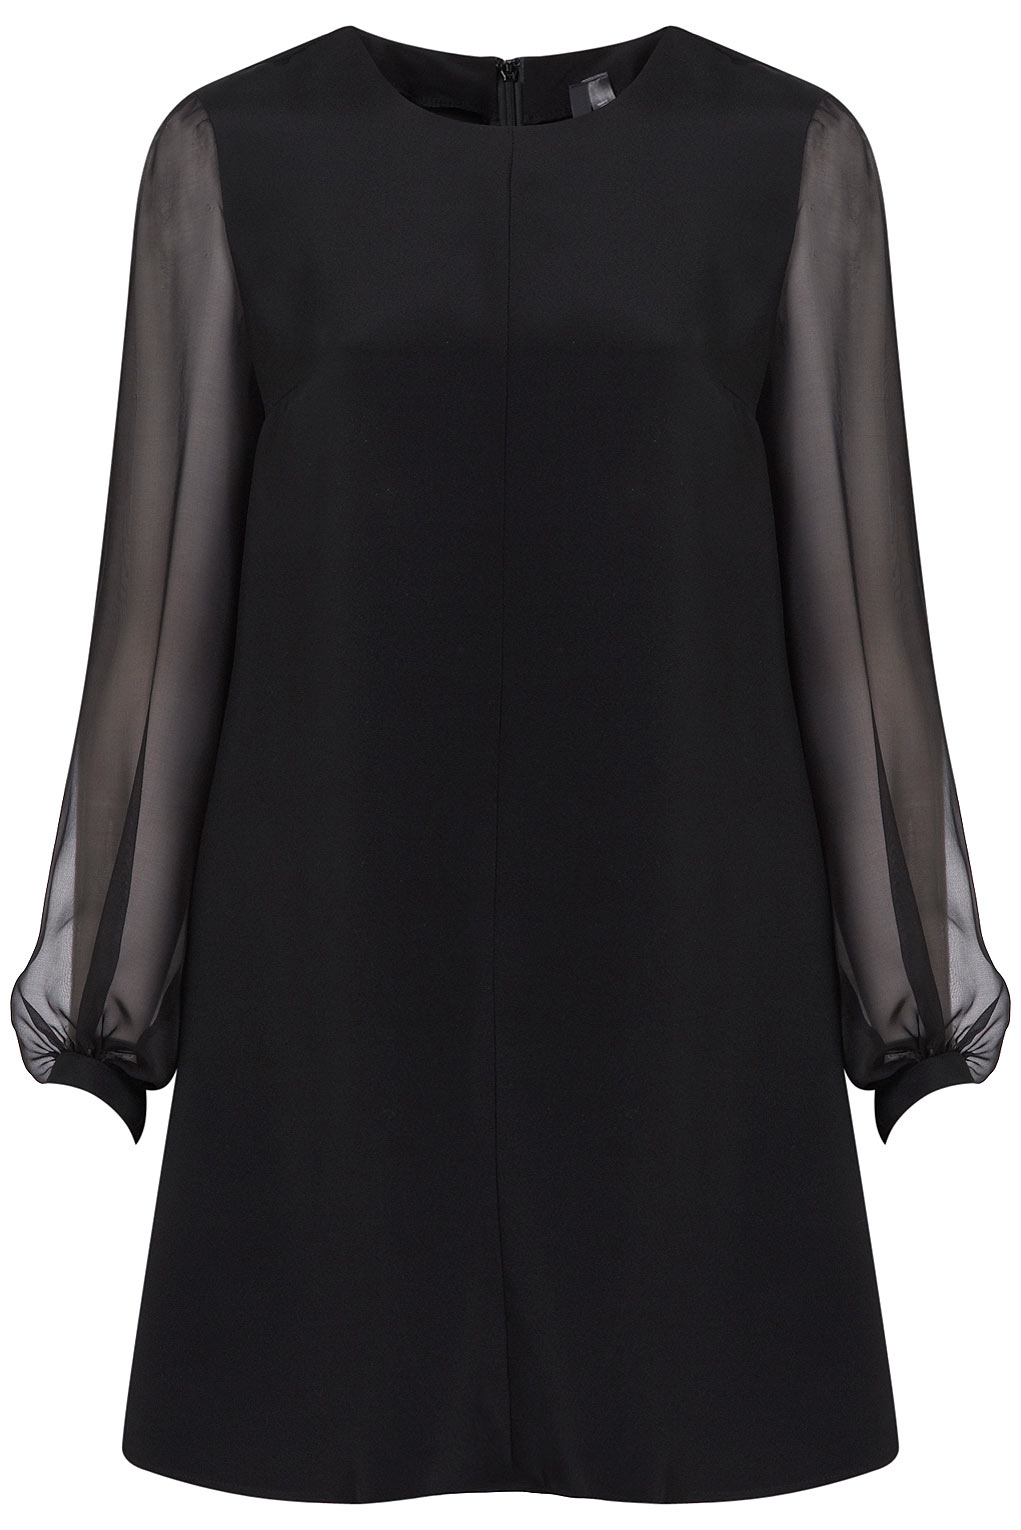 Topshop Sheer Sleeve Shift Dress By Boutique In Black Lyst